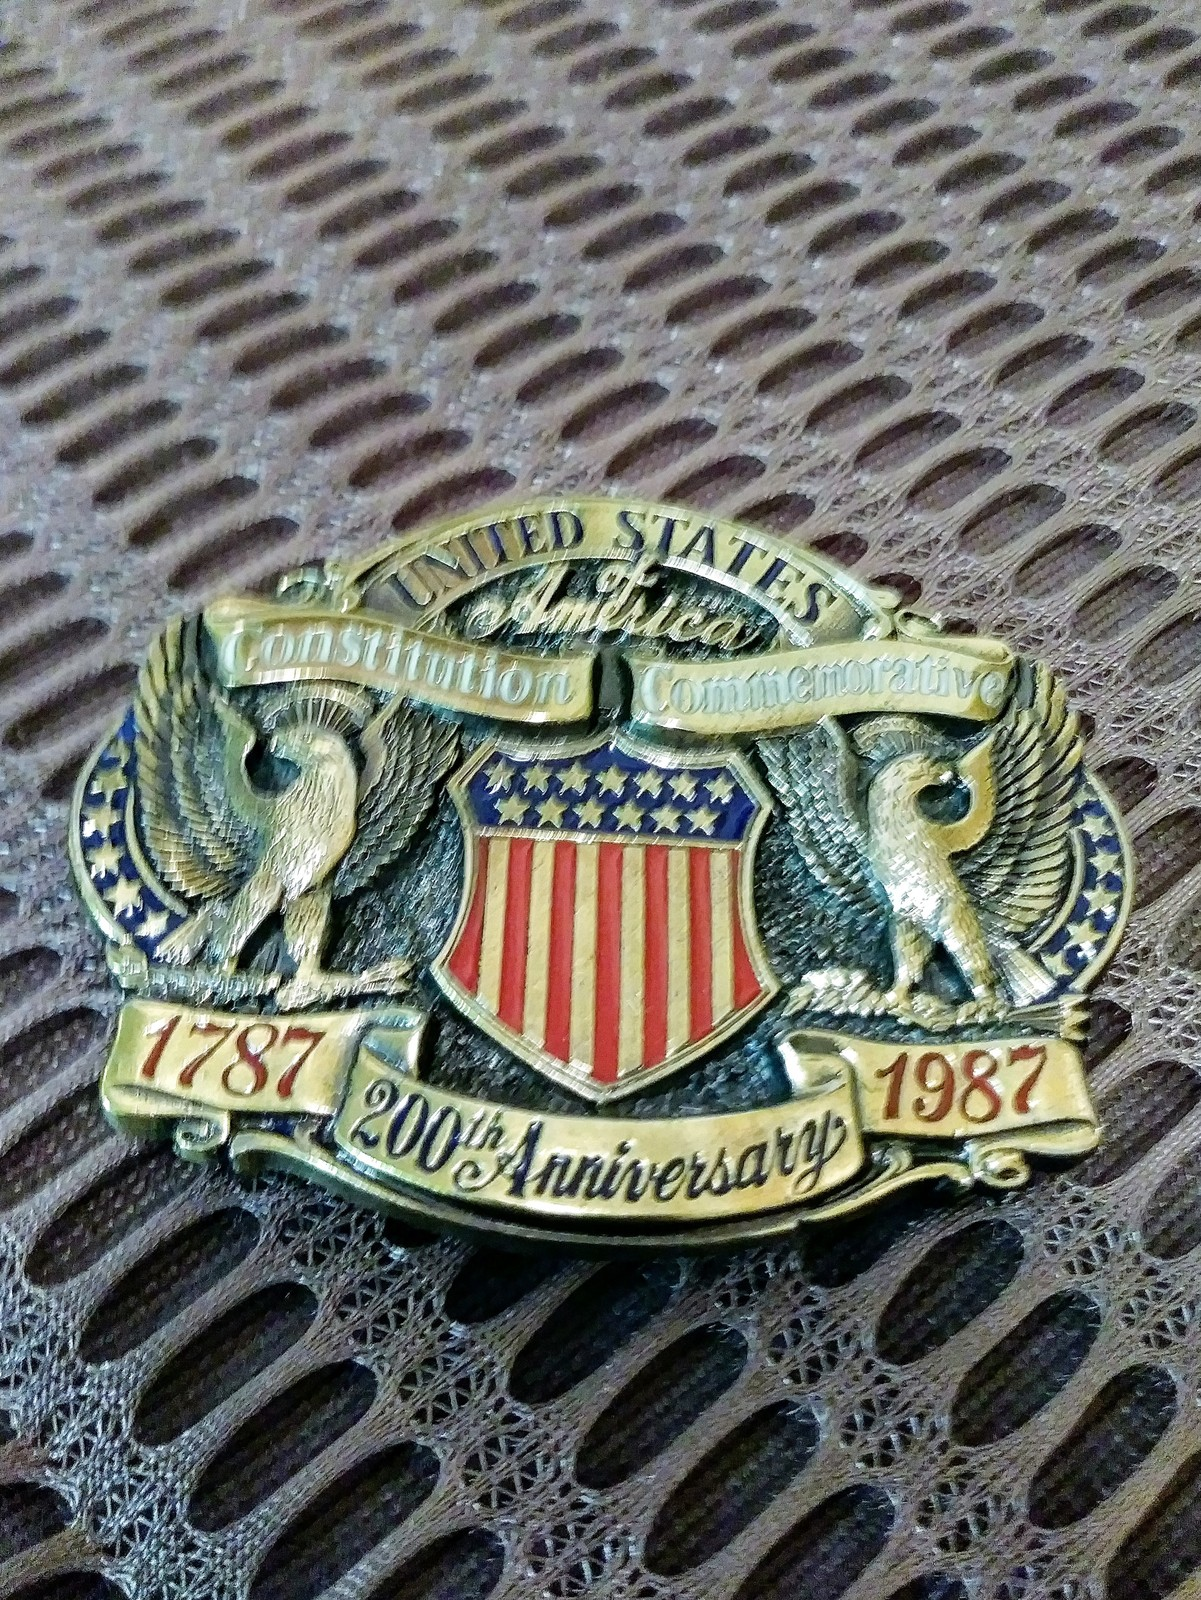 Vintage Belt Buckle 200 Anniversary 1787-1987 Constitution Commemorative Mens Be